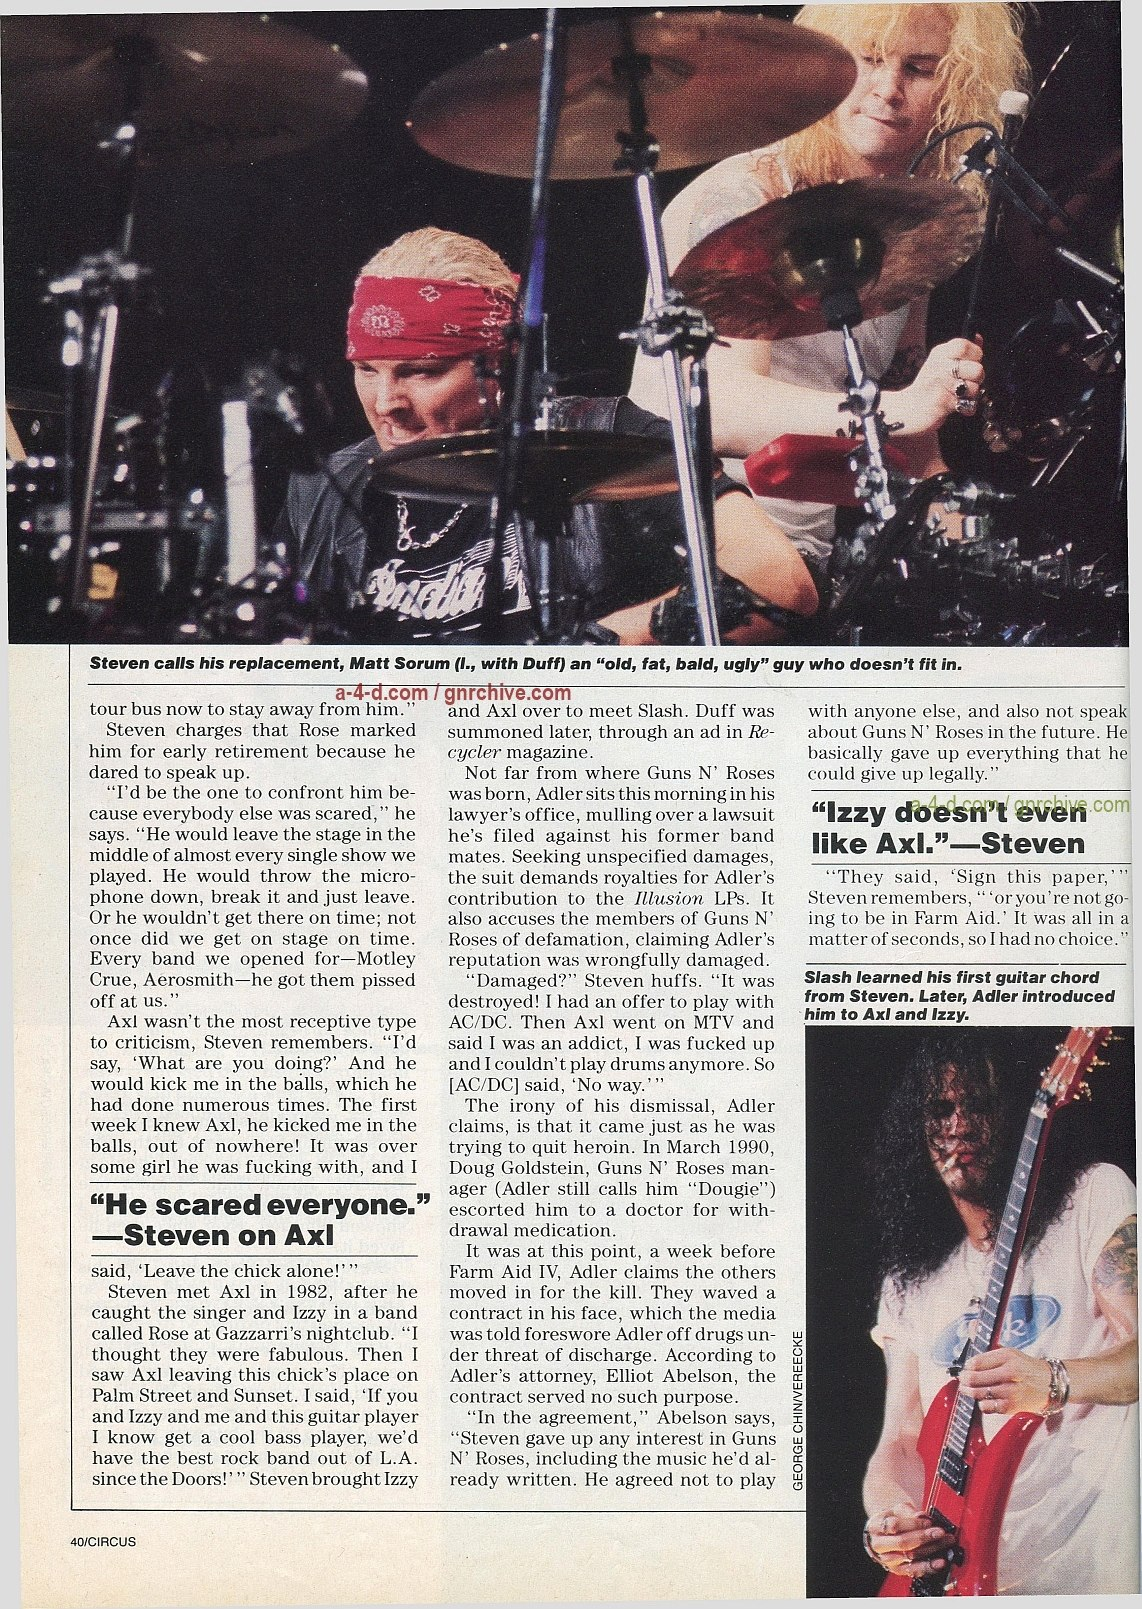 1991.10.31 - Circus - Axl Rose mocked/Fightin' words from Vince Neil 1991-114